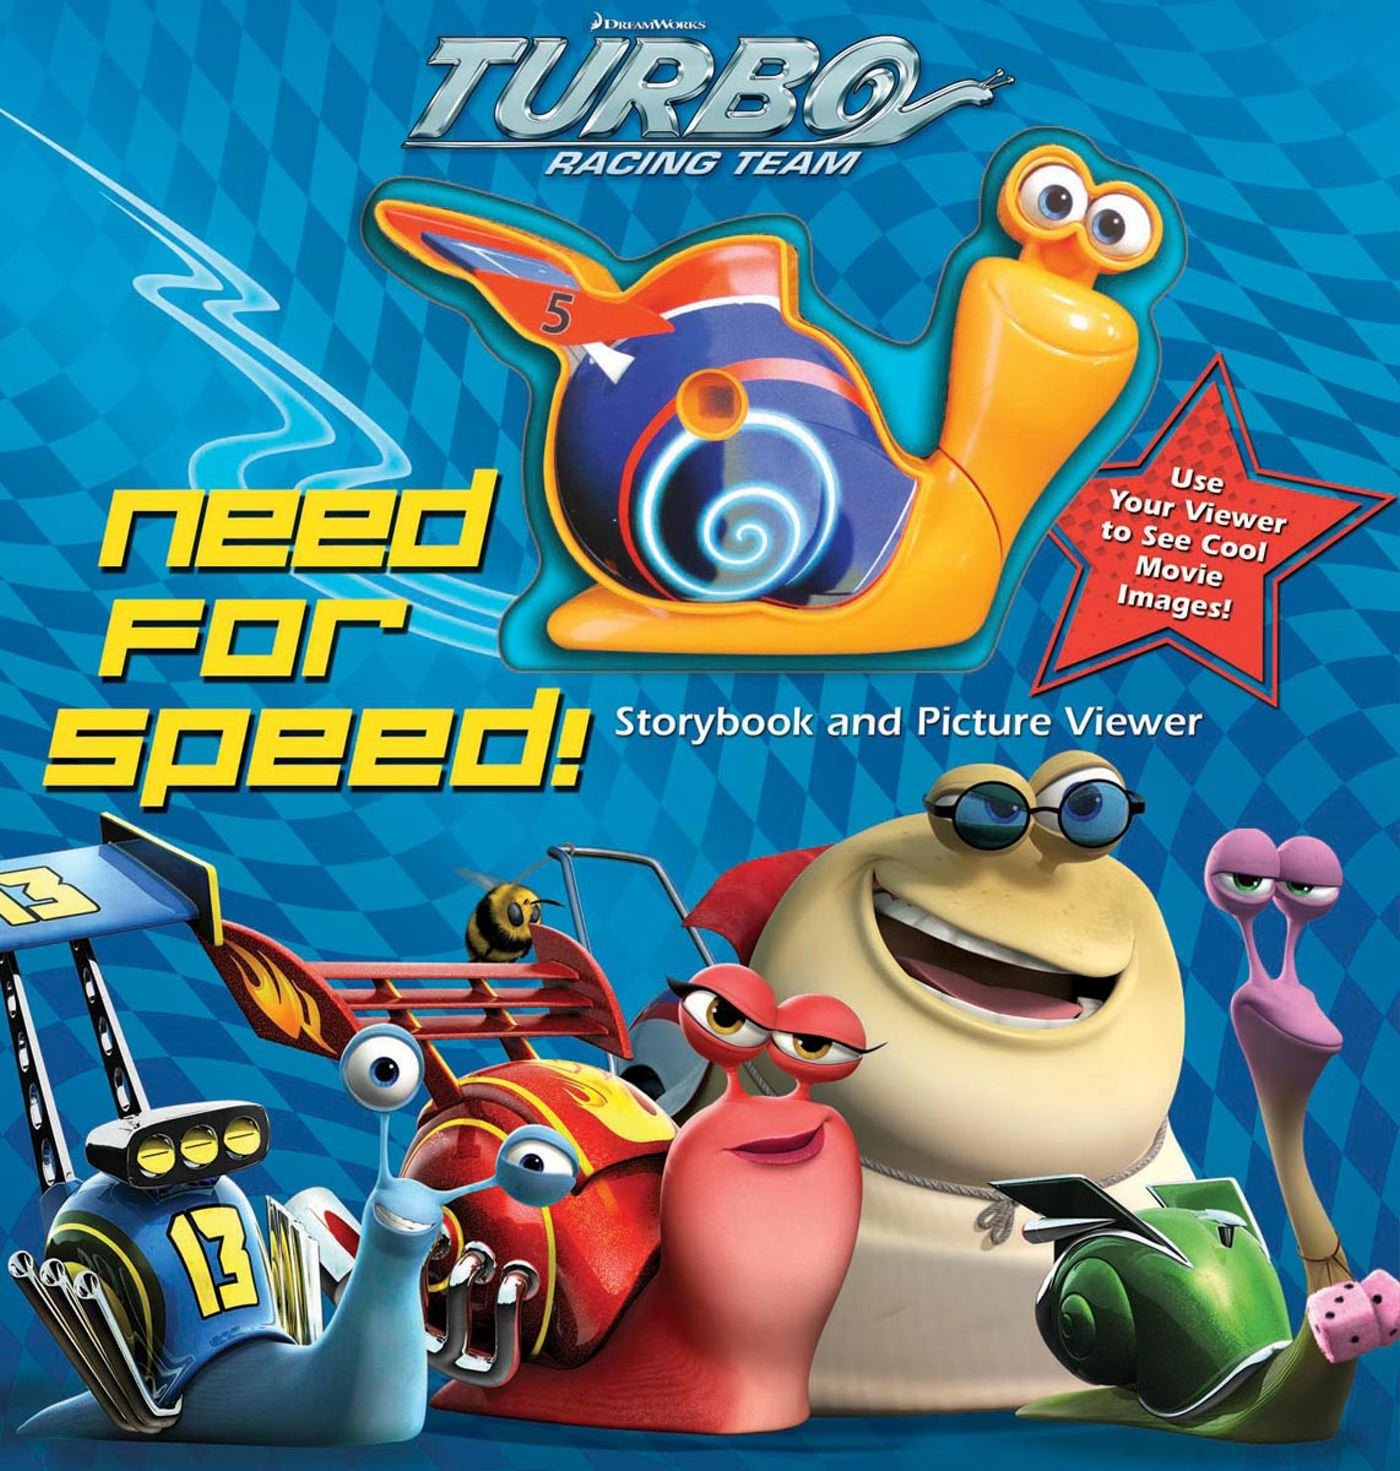 DreamWorks Turbo Need for Speed!: Storybook and Picture Viewer: Dreamworks Turbo: 9780794428464: Amazon.com: Books